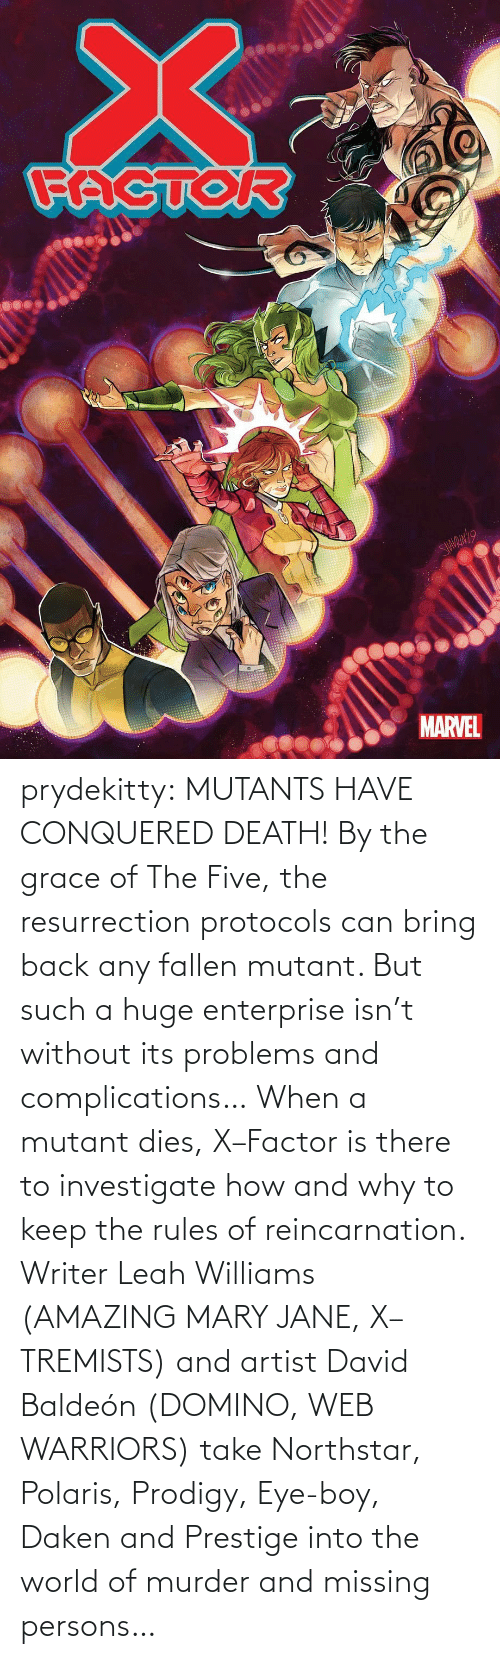 fallen: prydekitty:  MUTANTS HAVE CONQUERED DEATH! By the grace of The Five, the resurrection protocols can bring back any fallen mutant. But such a huge enterprise isn't without its problems and complications… When a mutant dies, X–Factor is there to investigate how and why to keep the rules of reincarnation. Writer Leah Williams (AMAZING MARY JANE, X–TREMISTS) and artist David Baldeón (DOMINO, WEB WARRIORS) take Northstar, Polaris, Prodigy, Eye-boy, Daken and Prestige into the world of murder and missing persons…